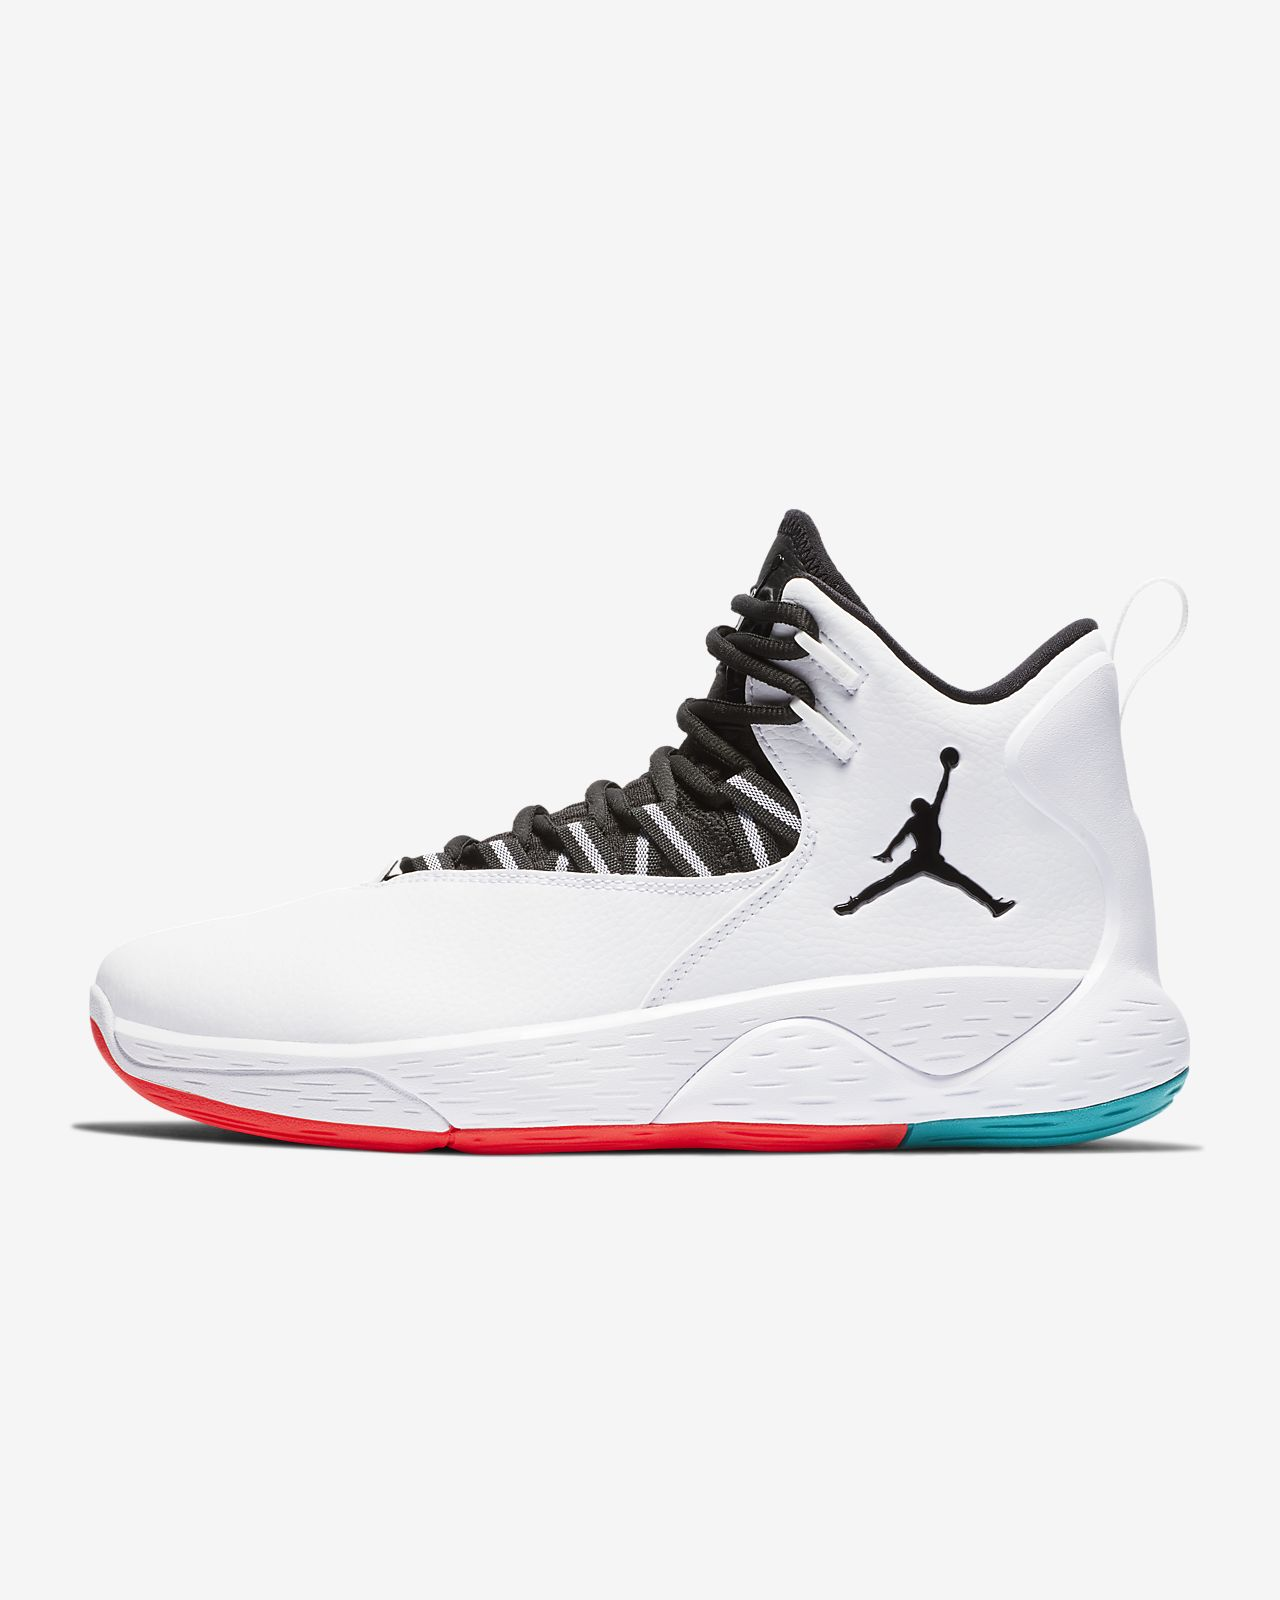 b0f5cd8c0dc5 ... real jordan super.fly mvp mens basketball shoe dcd71 ff02b